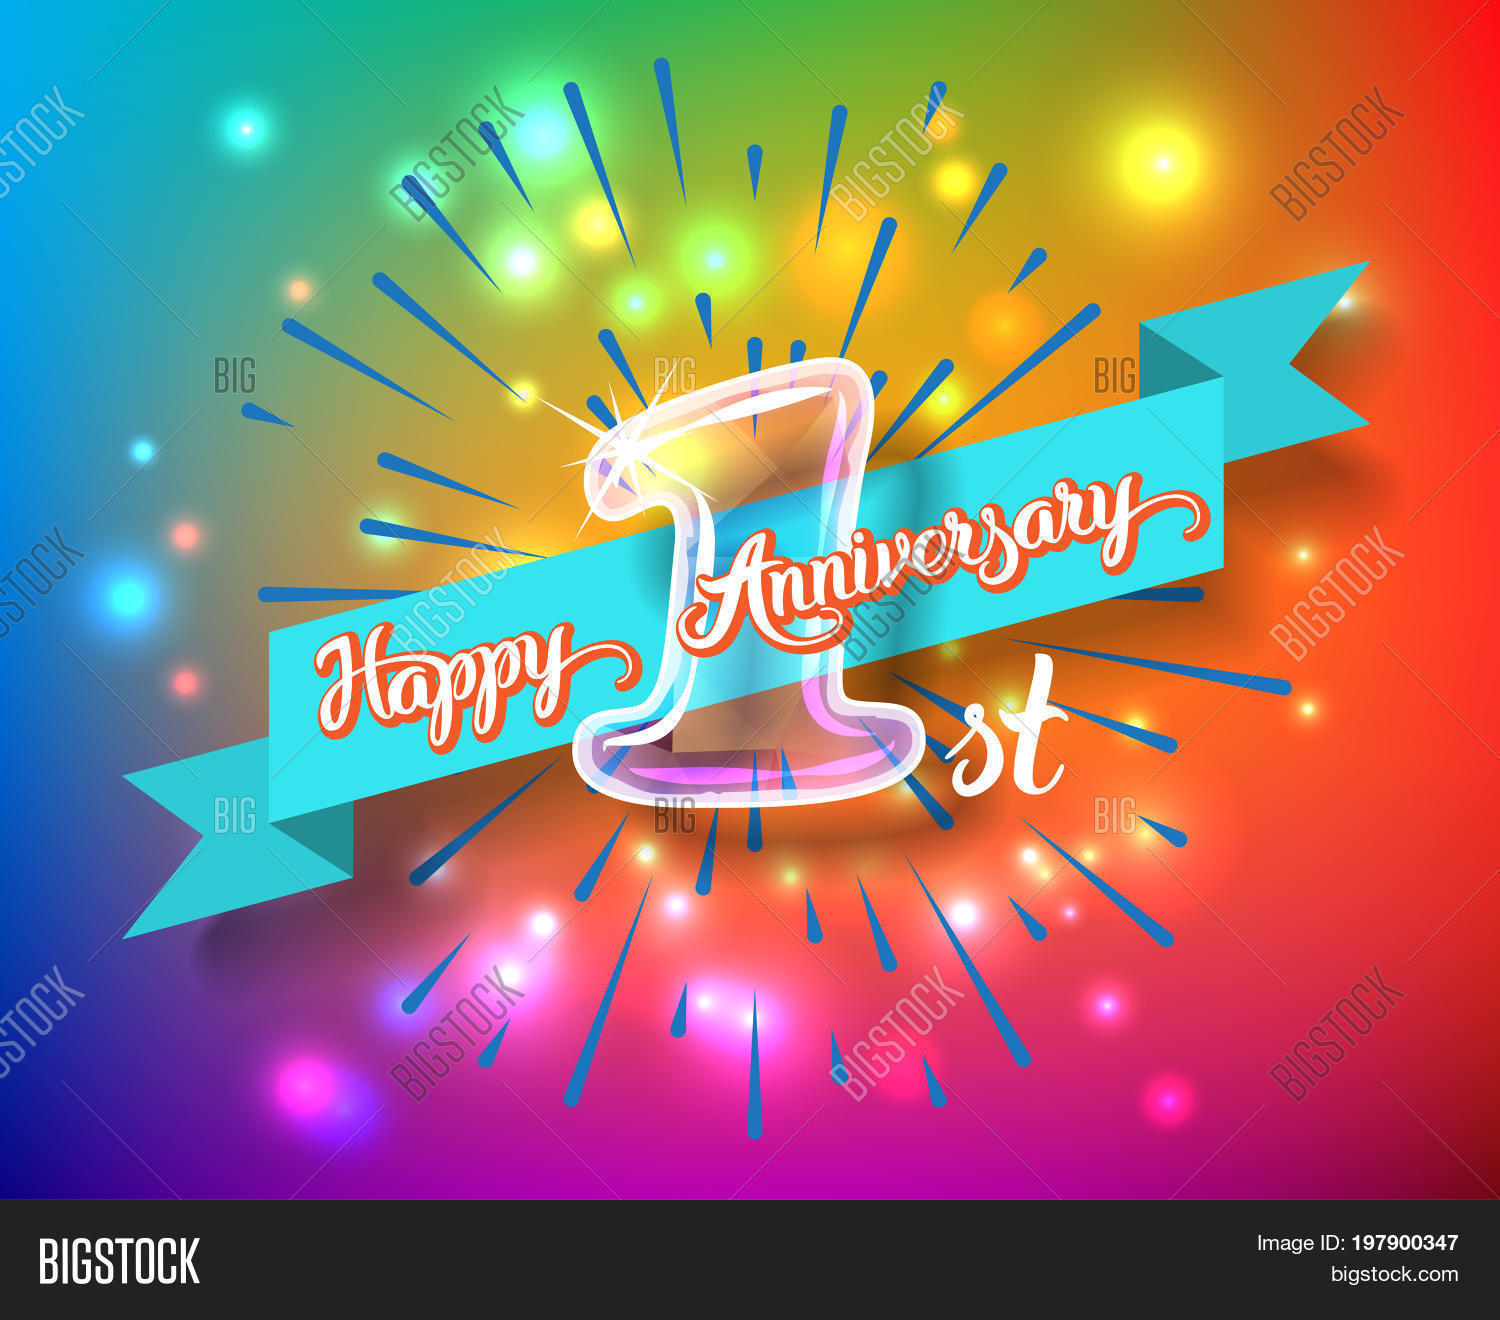 Happy 1st Anniversary Image Photo Free Trial Bigstock